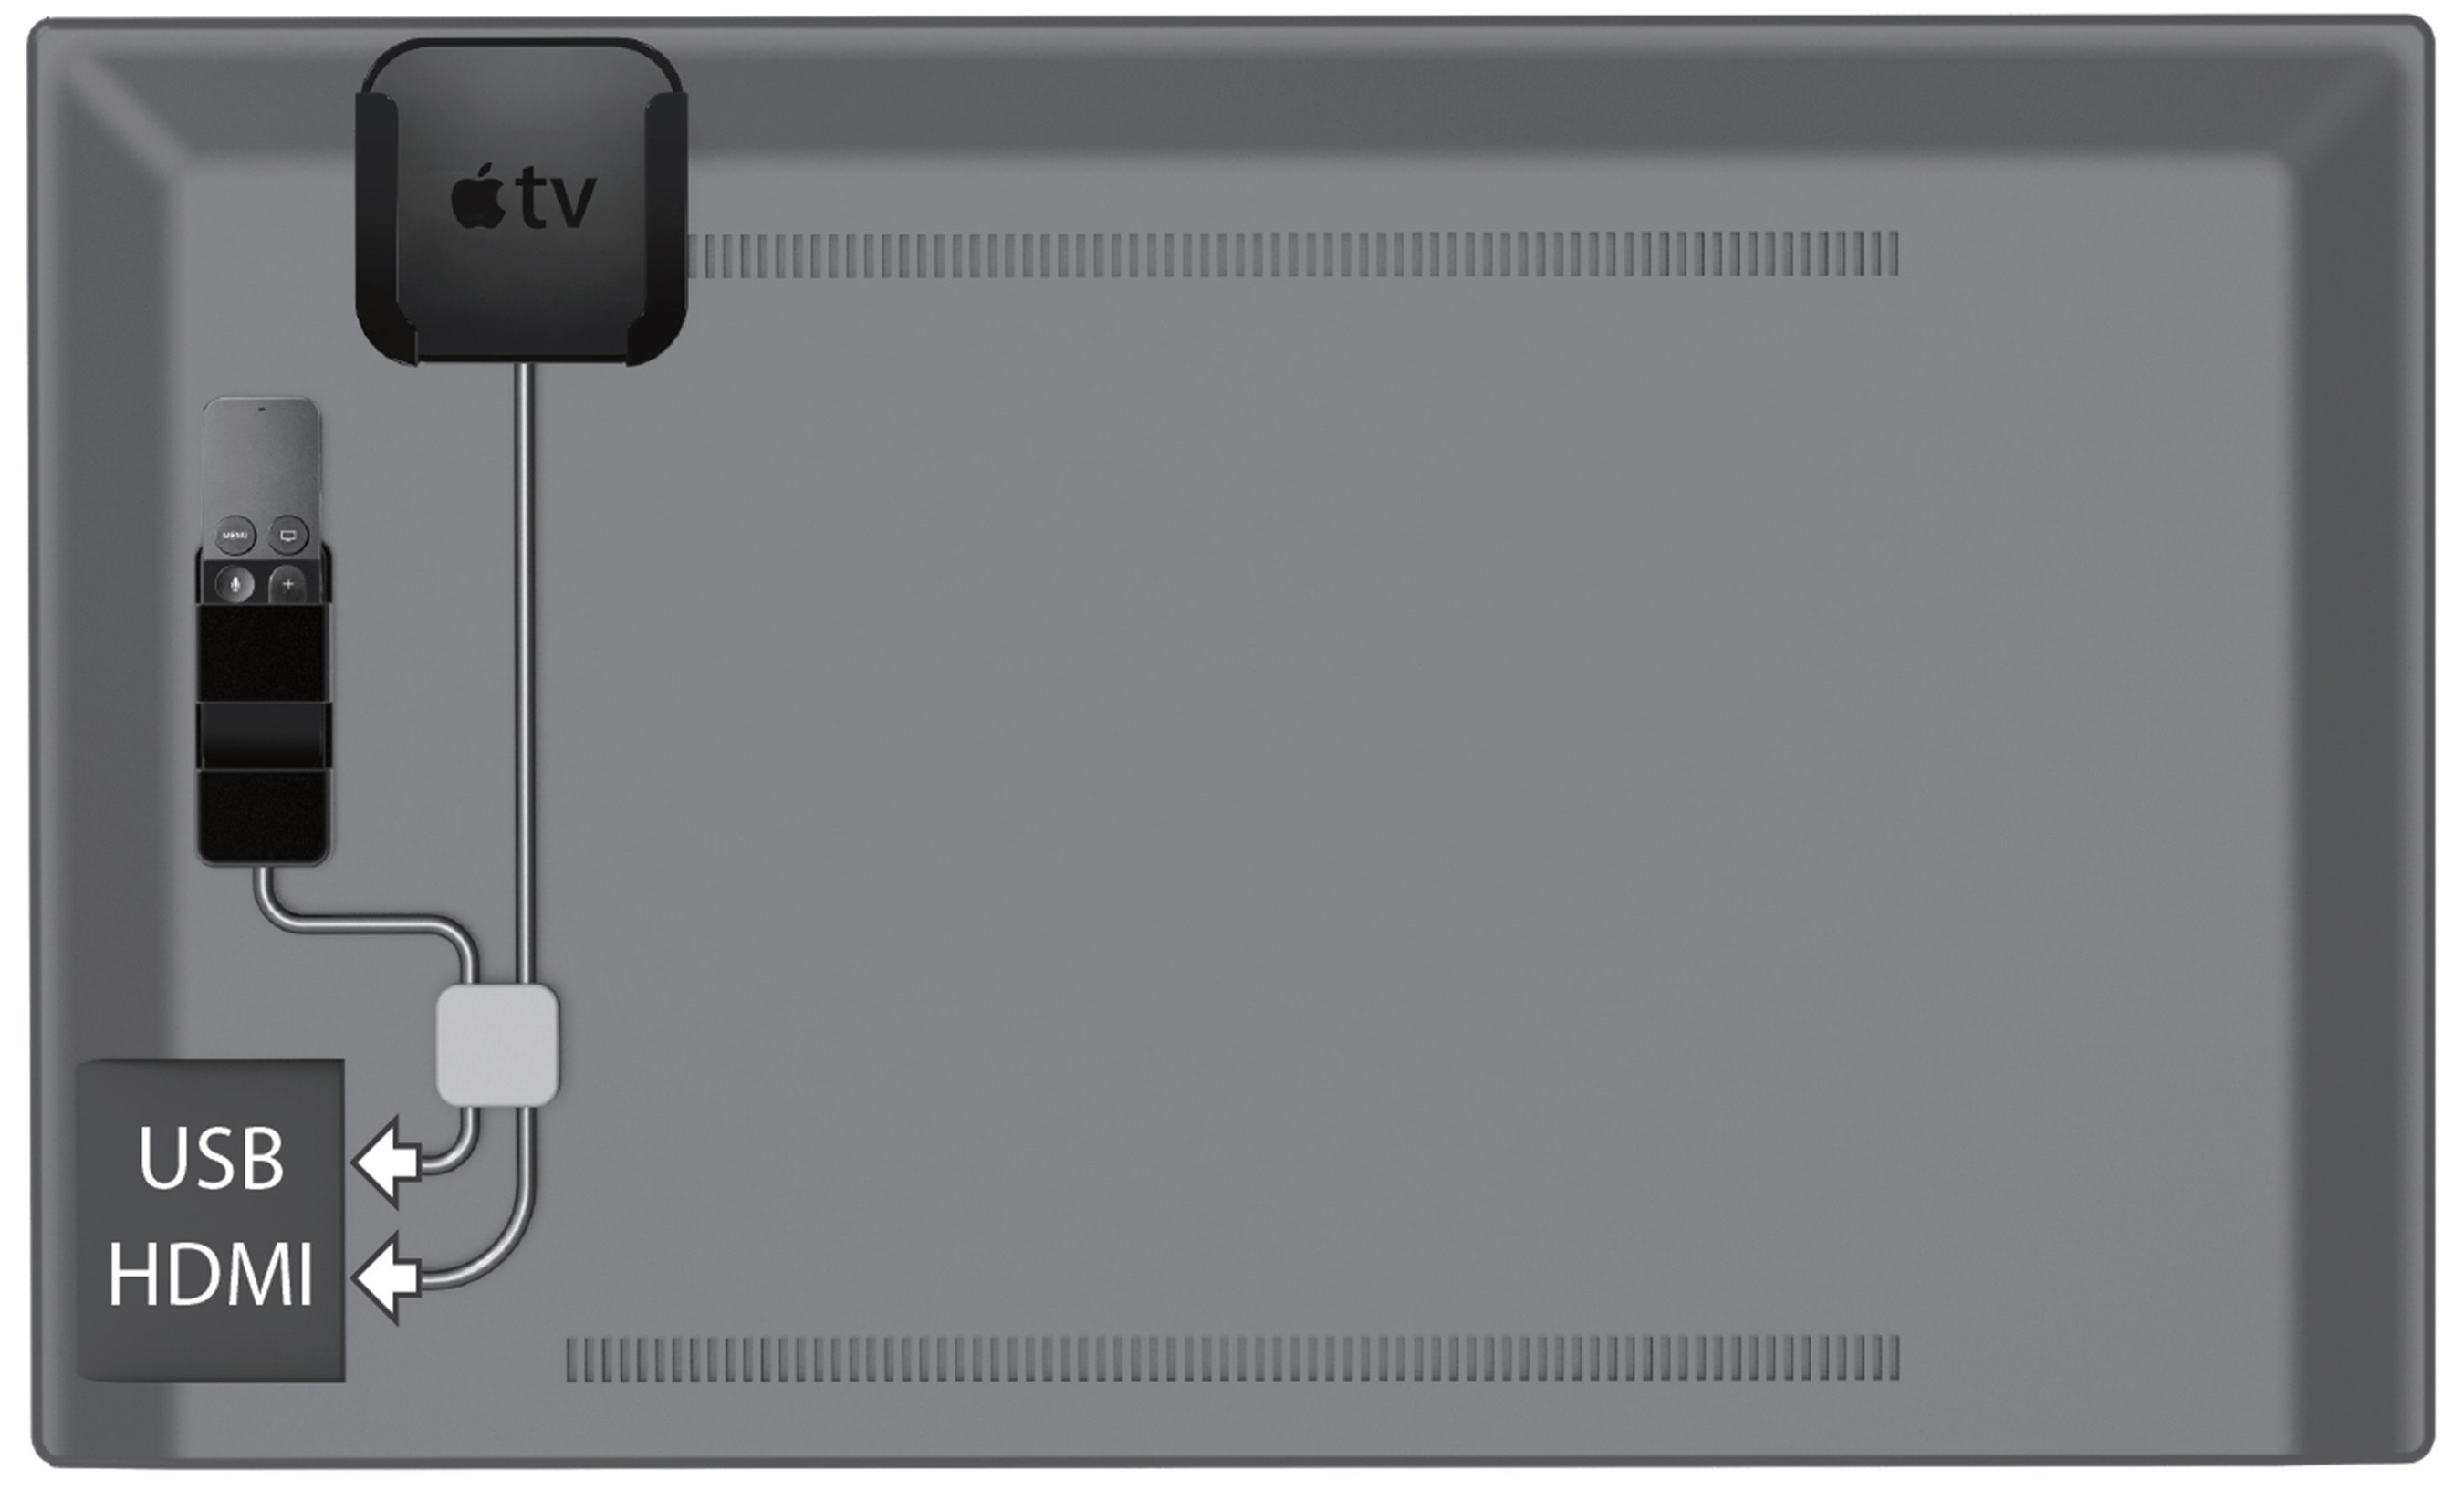 The Apple TV and remote are mounted to the back of a television with TotalMount. The USB and HDMI cables are easily managed using the TotalMount cord management system, which is included in the TotalMount Pro bundle sold in Apple stores worldwide.